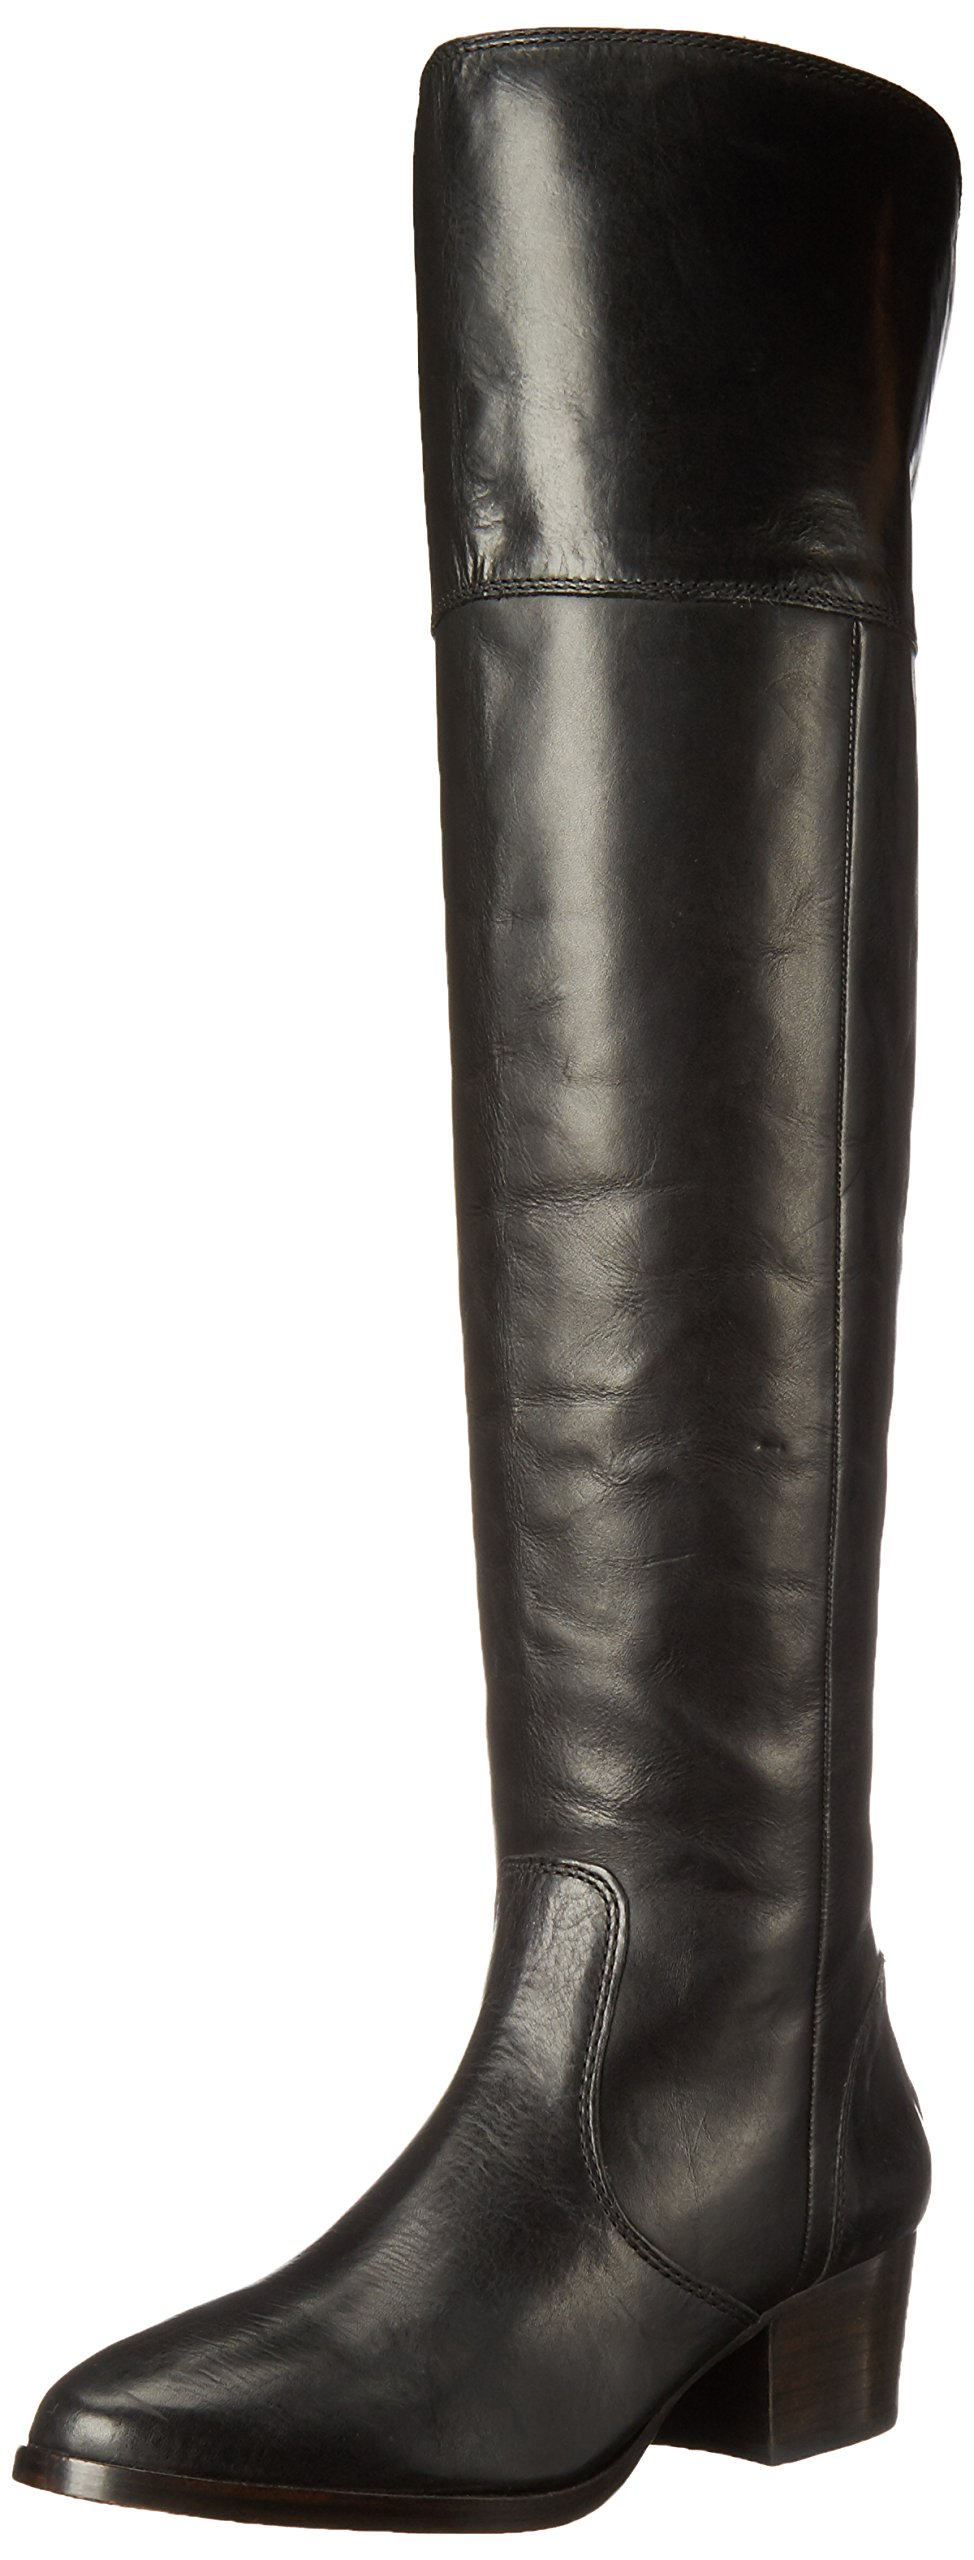 FRYE Women's Clara OTK Leather Slouch Boot, Black, 8 M US